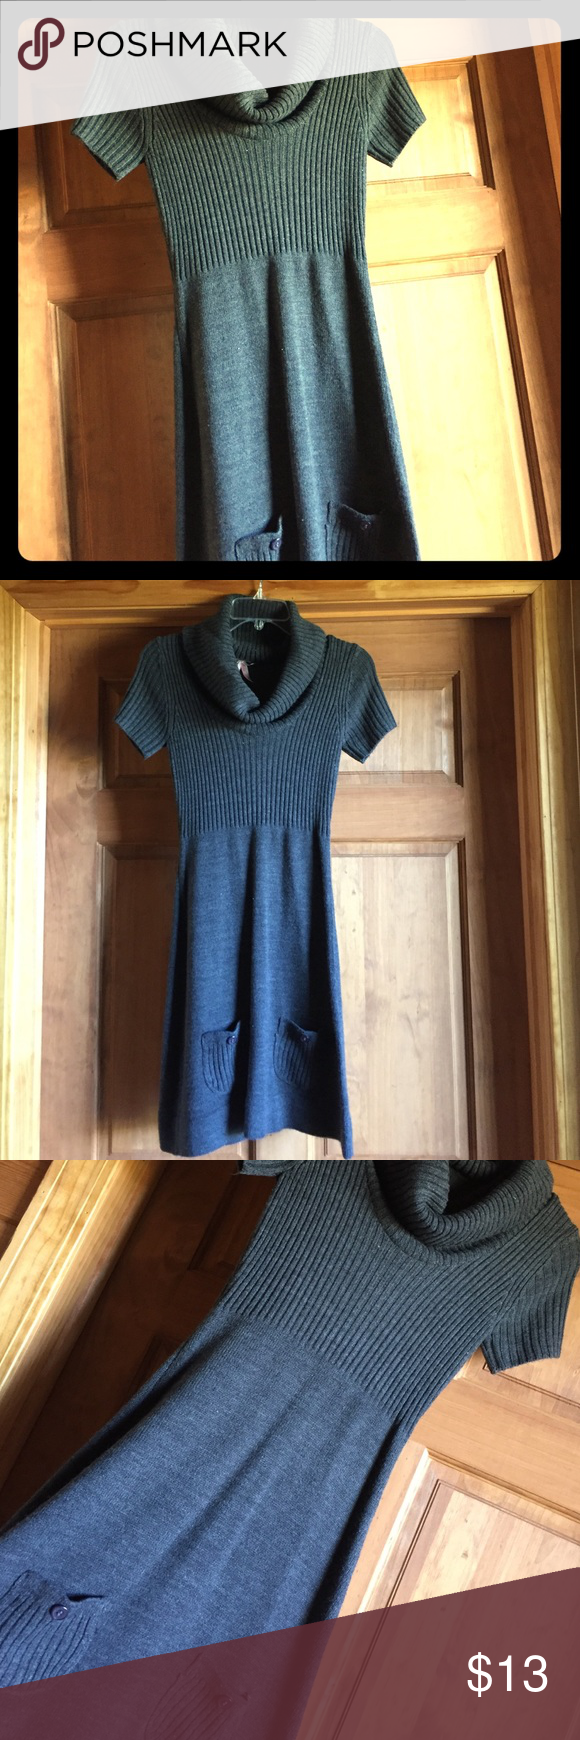 Sweater dress Dark gray sweater dress. Dresses